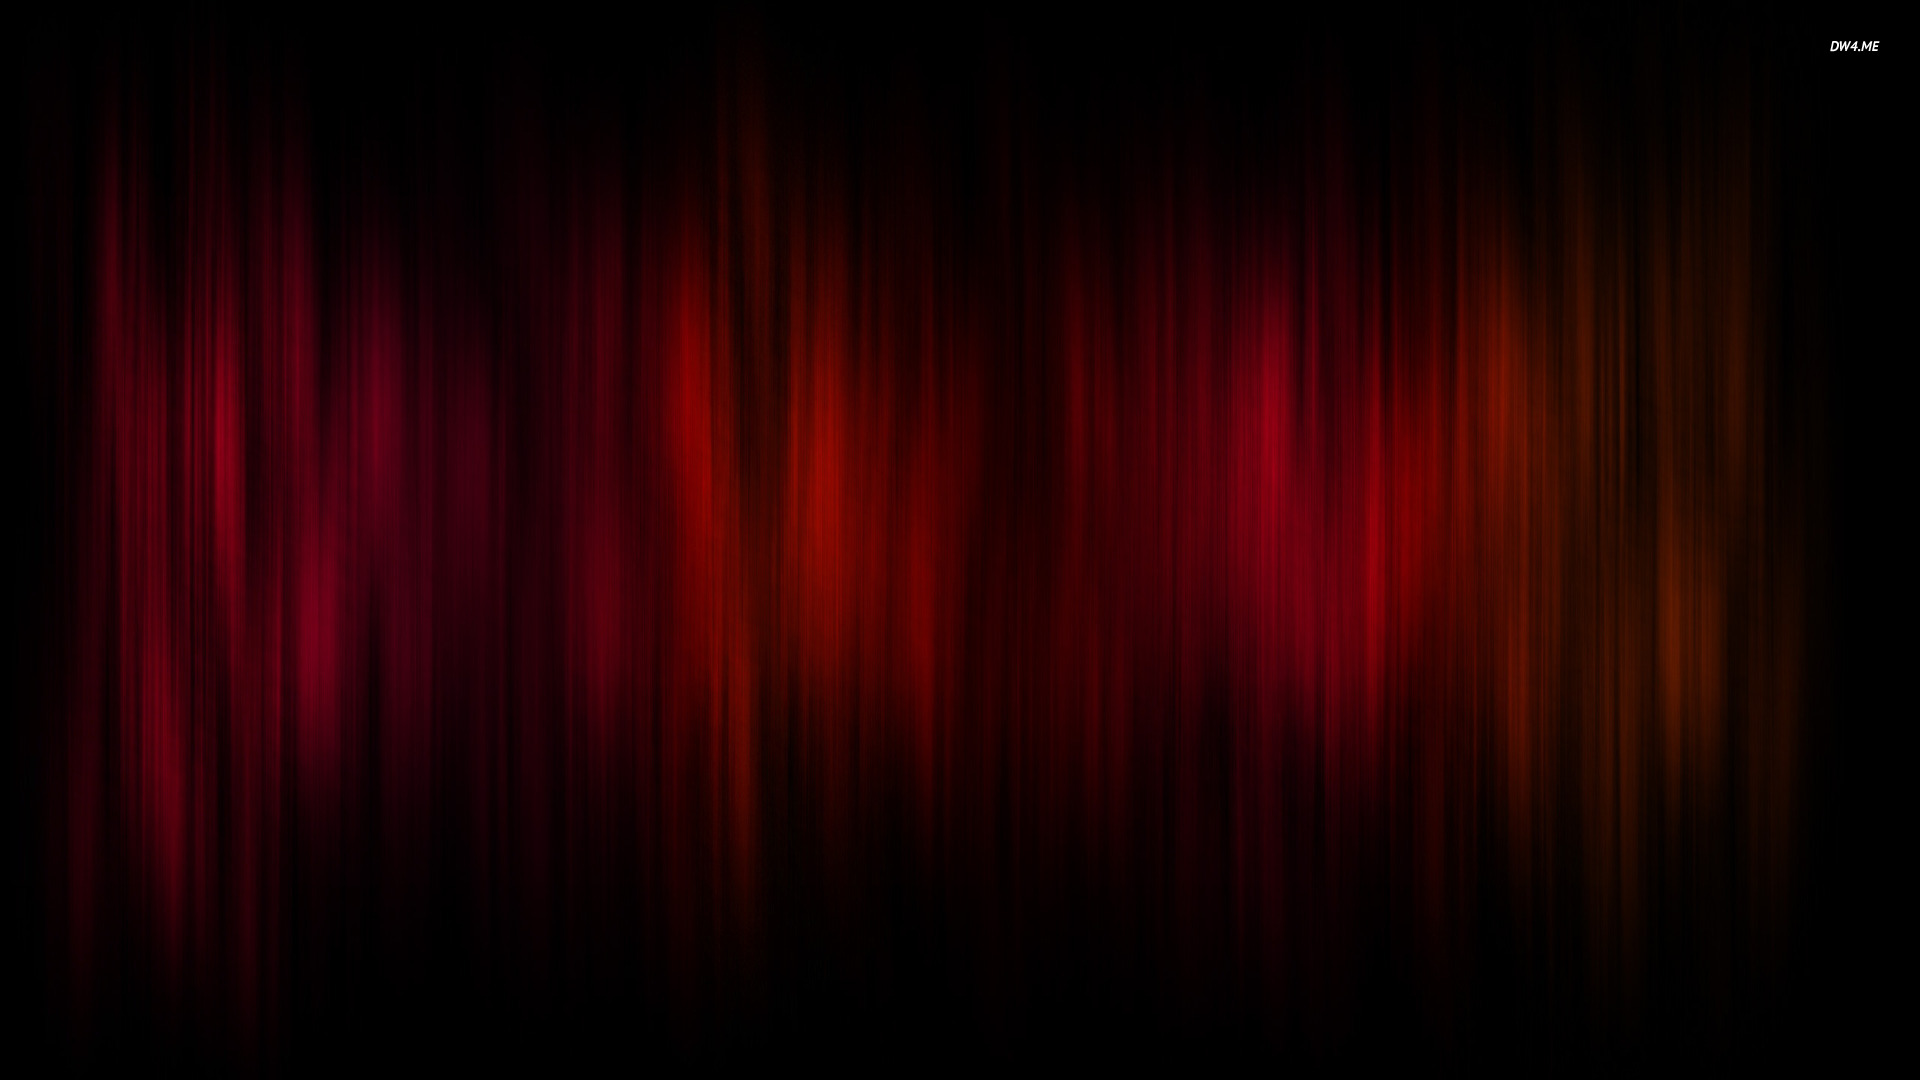 Black And Red Abstract Wallpaper Download 359